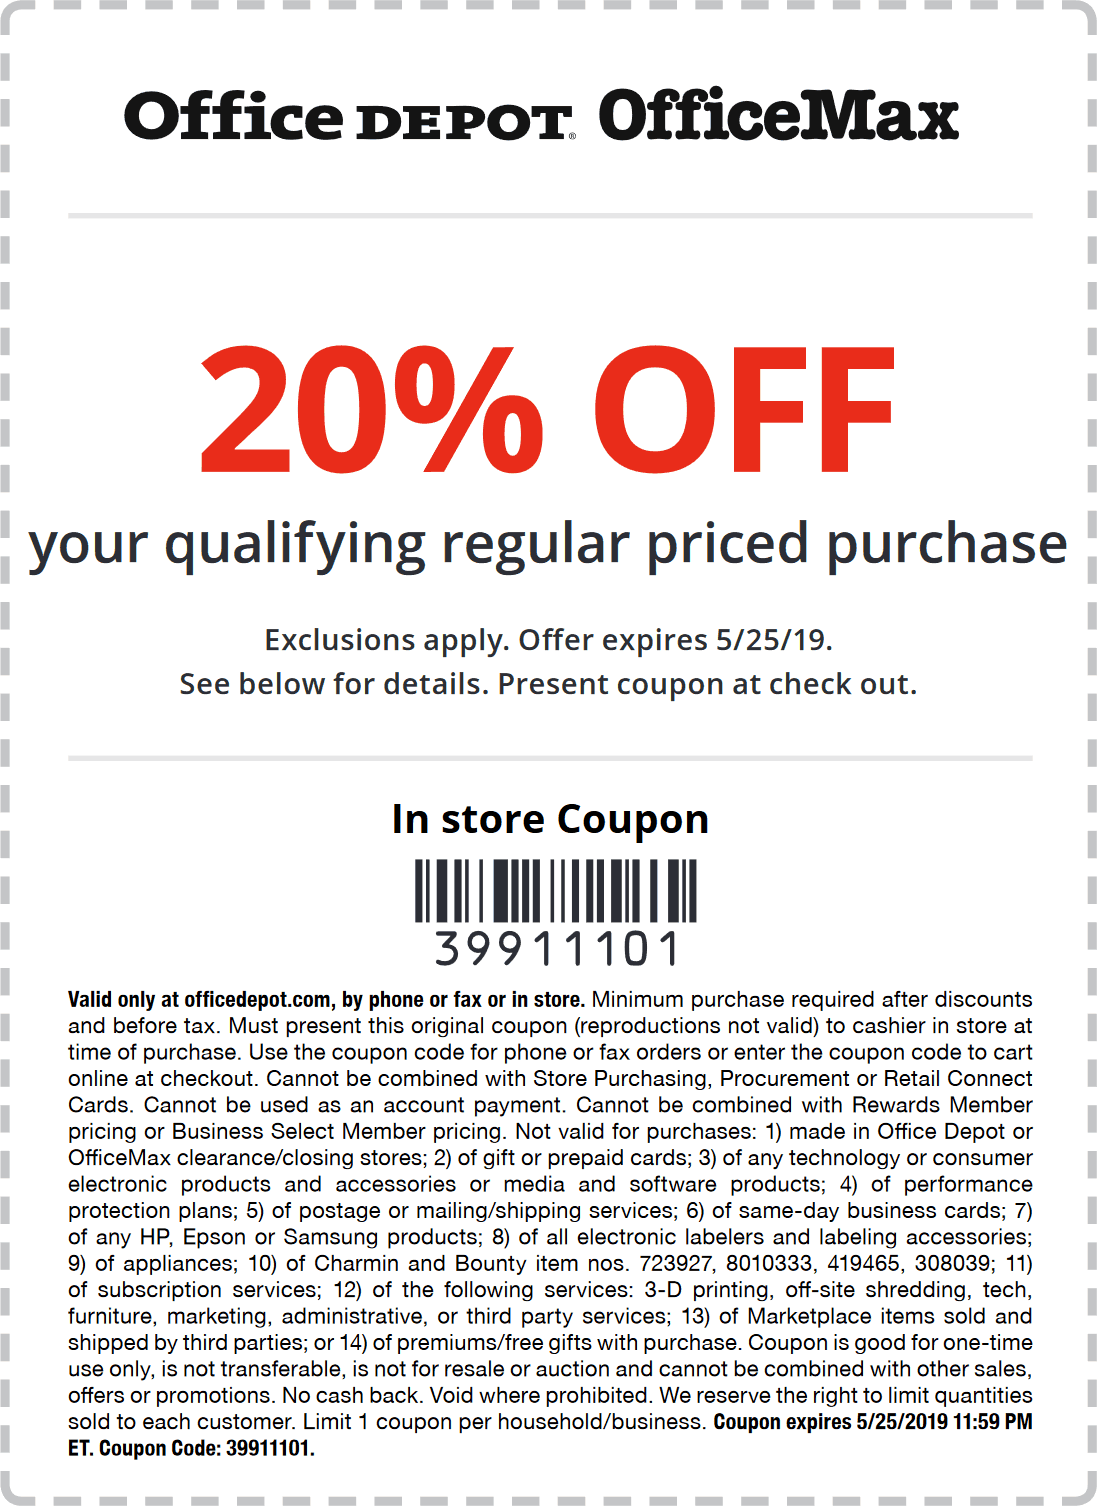 Office Depot Coupon October 2019 20% off at Office Depot & OfficeMax, or online via promo code 39911101